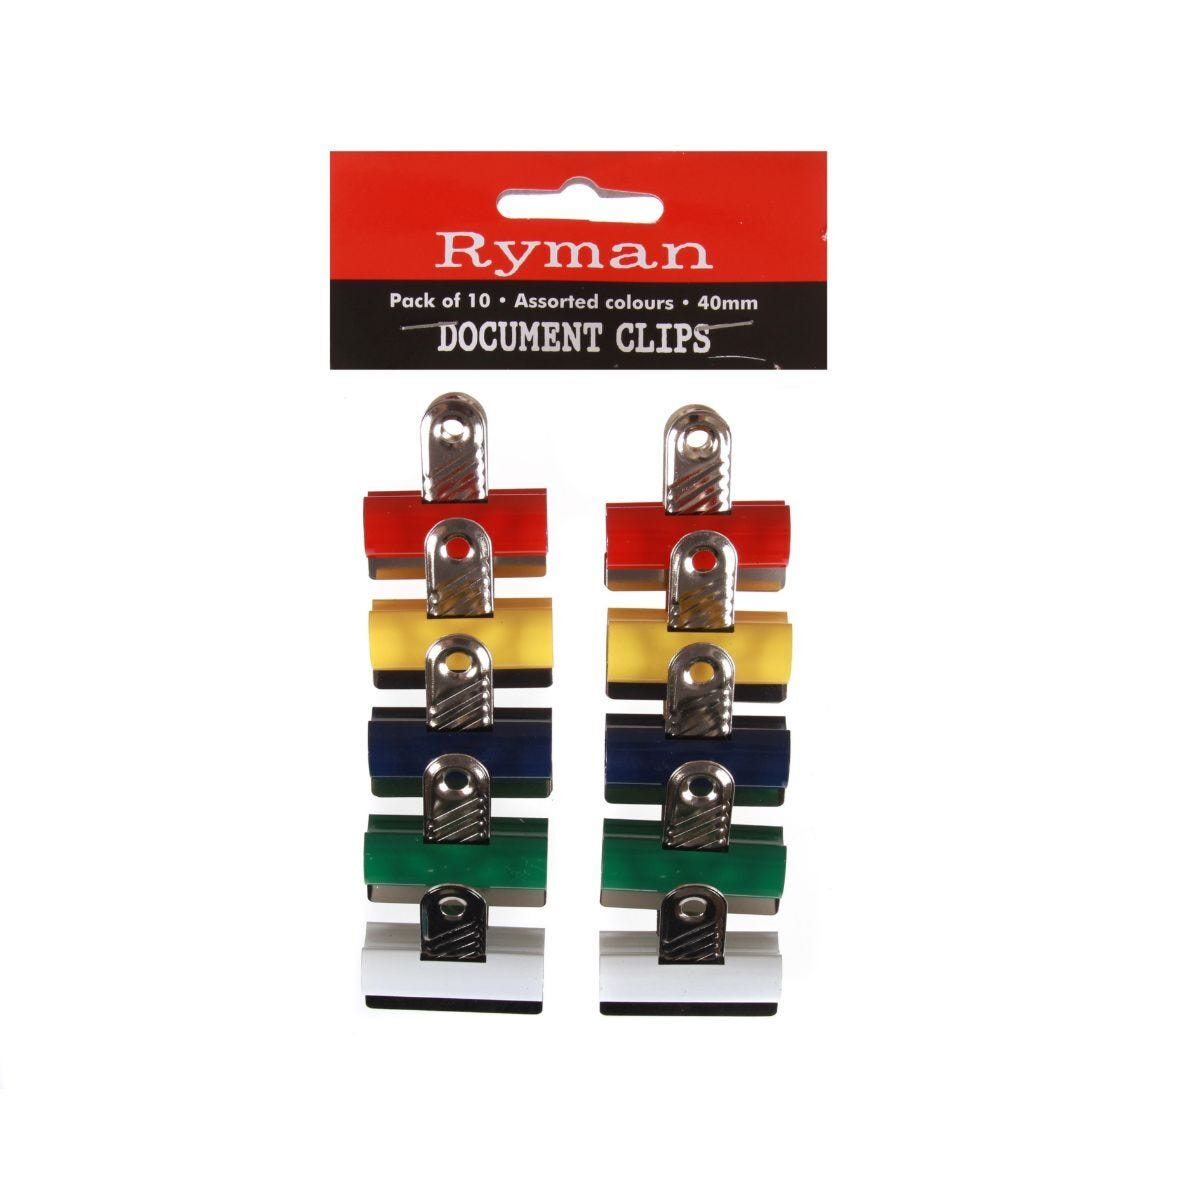 Ryman Document Clips 40mm Pack of 10